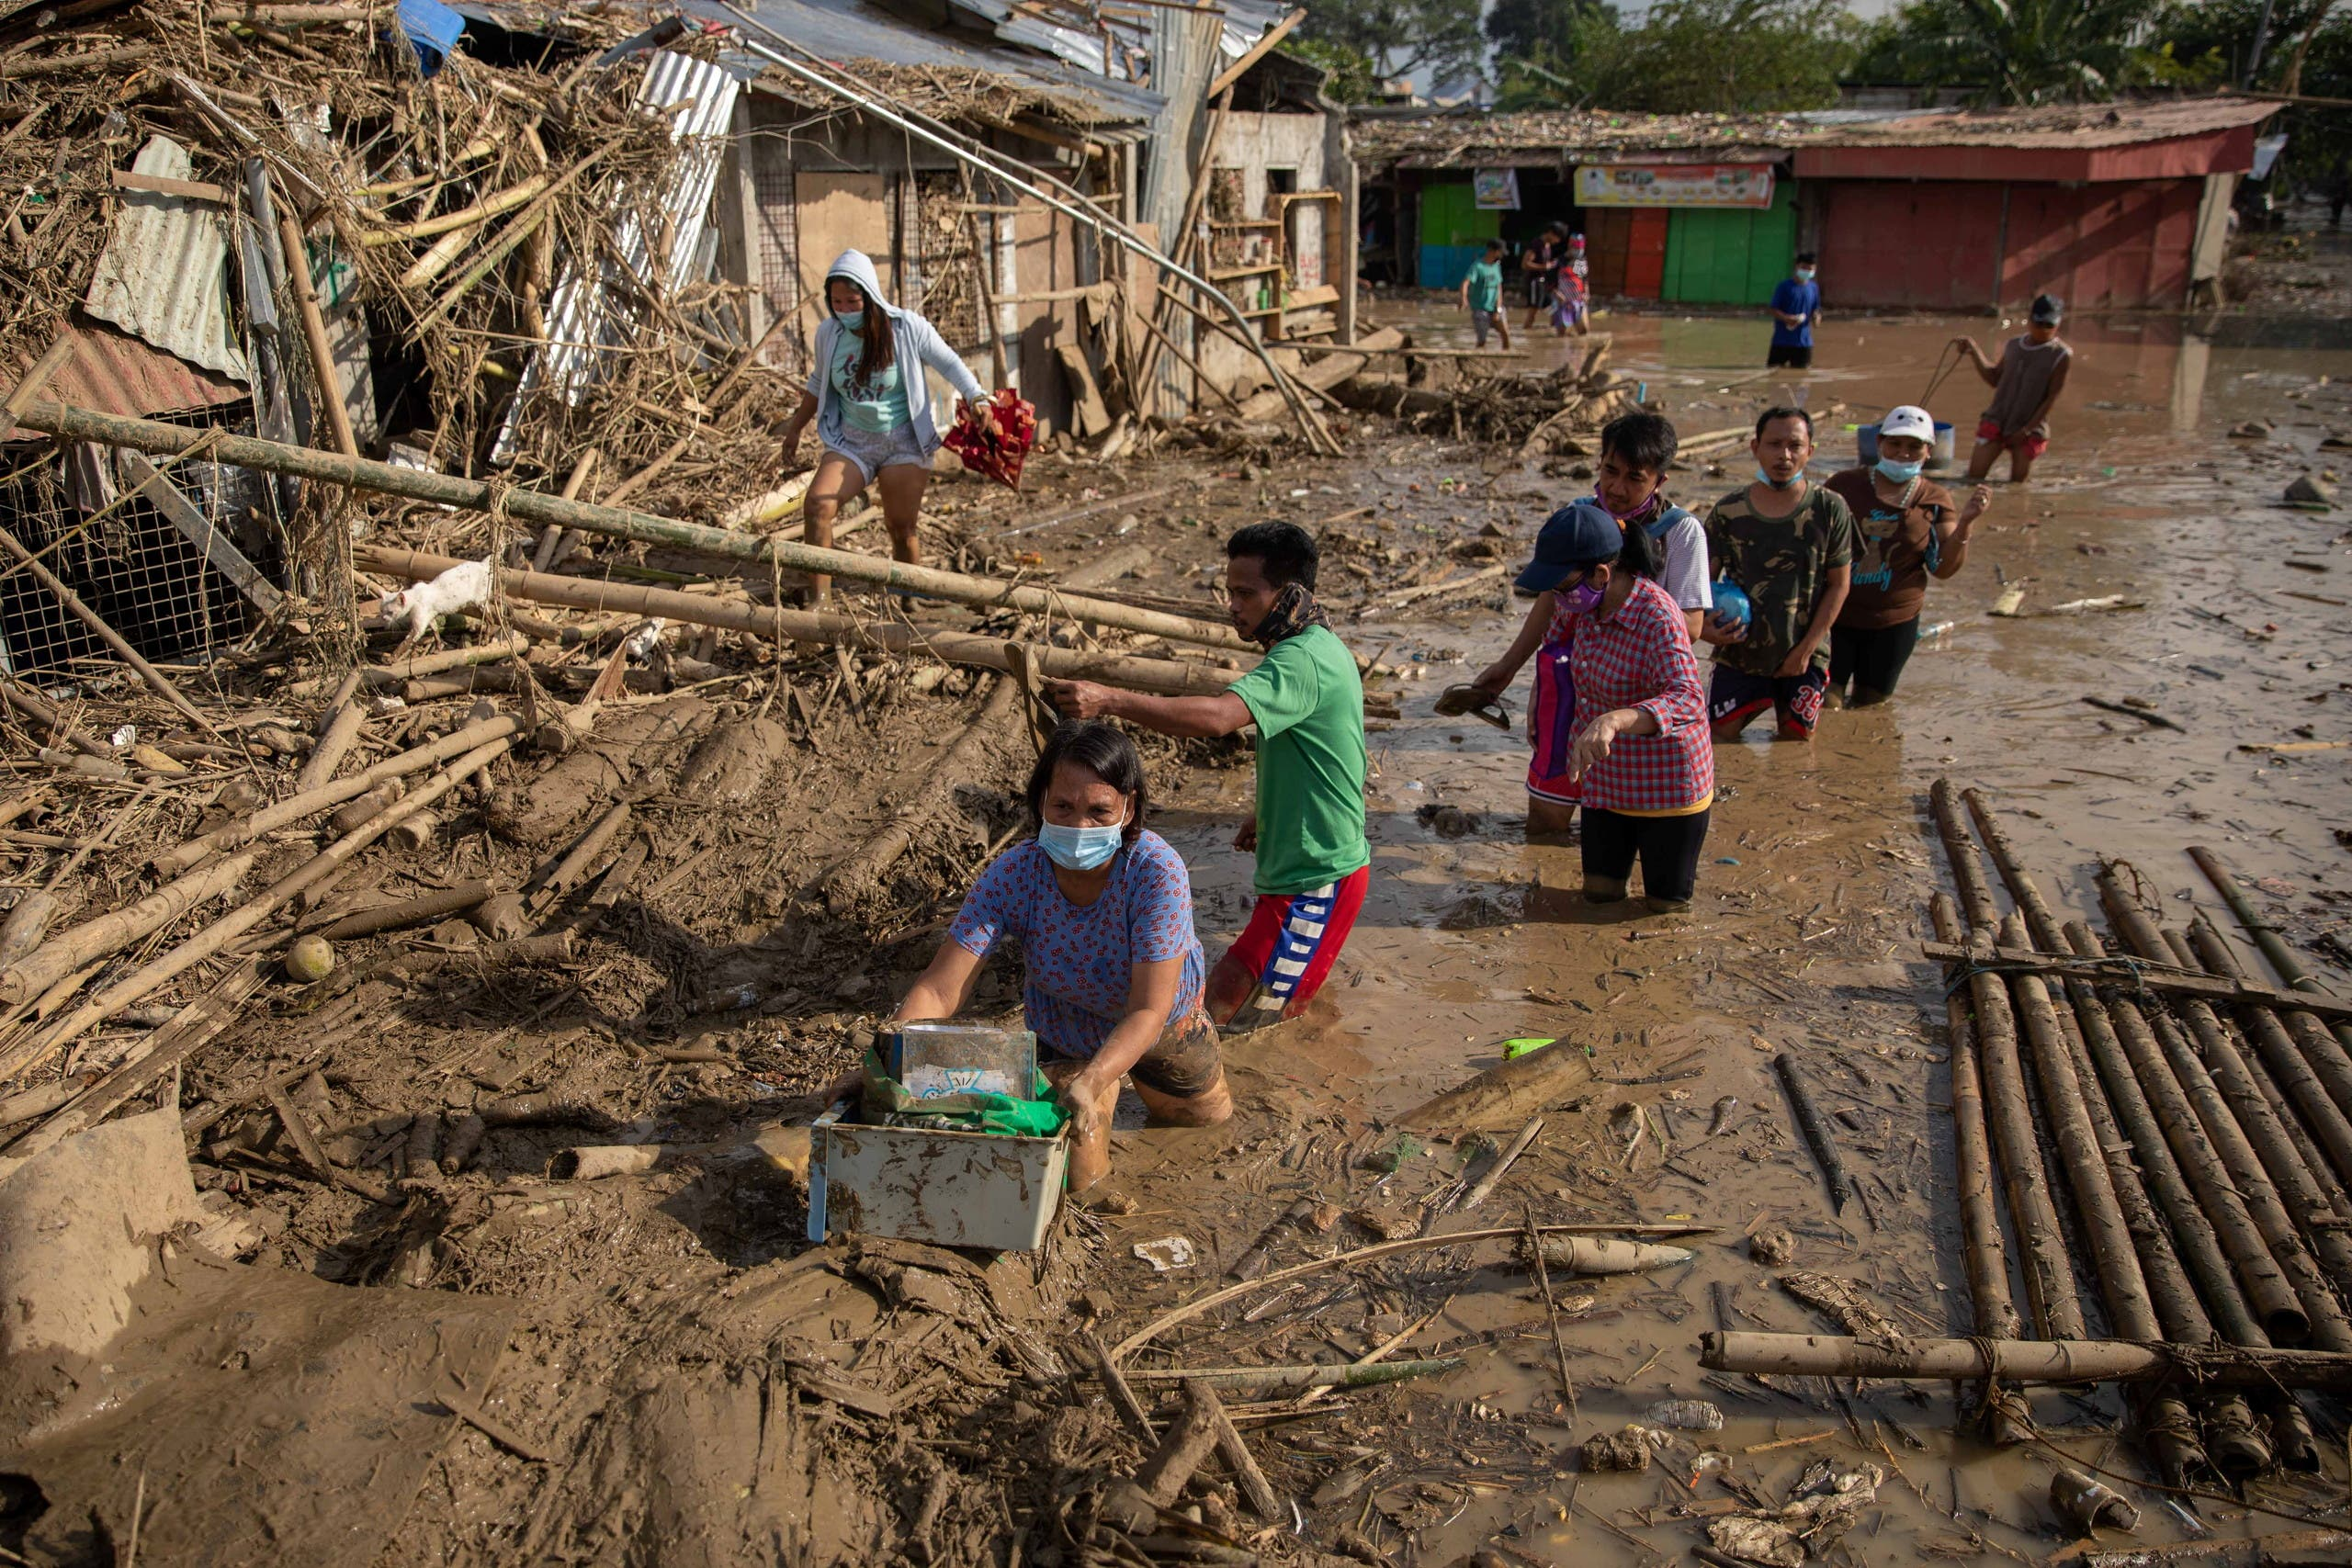 Residents retrieve belongings from their submerged village following floods caused by Typhoon Vamco, in Rodriguez, Rizal province, Philippines, November 14, 2020. (Reuters)